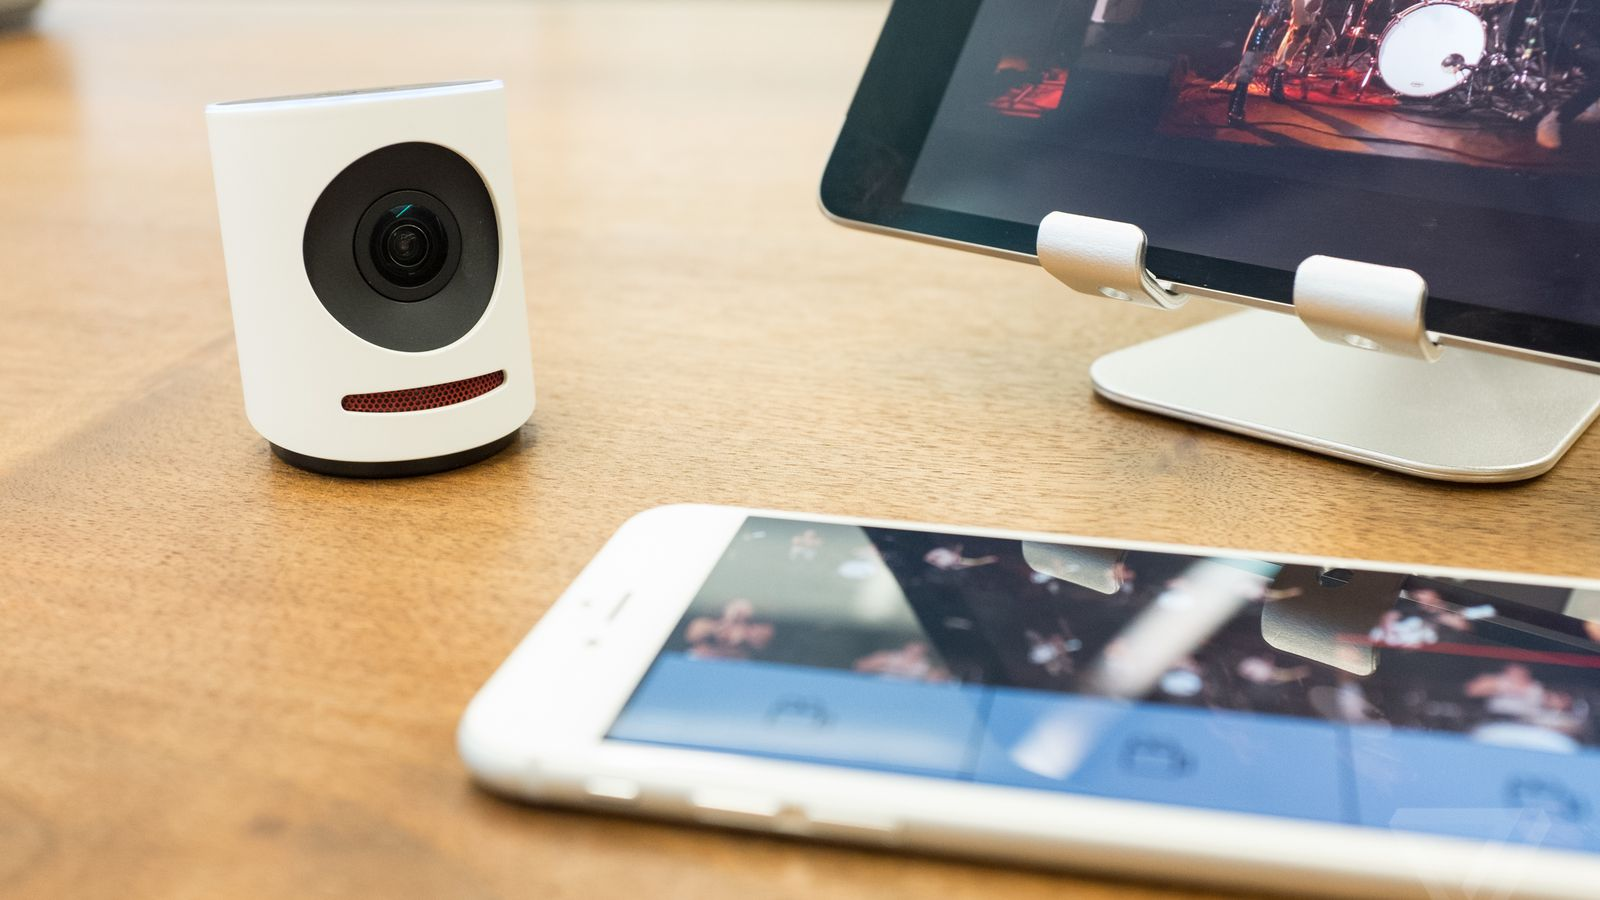 The livestream mevo is the first camera that works with for Camera streaming live